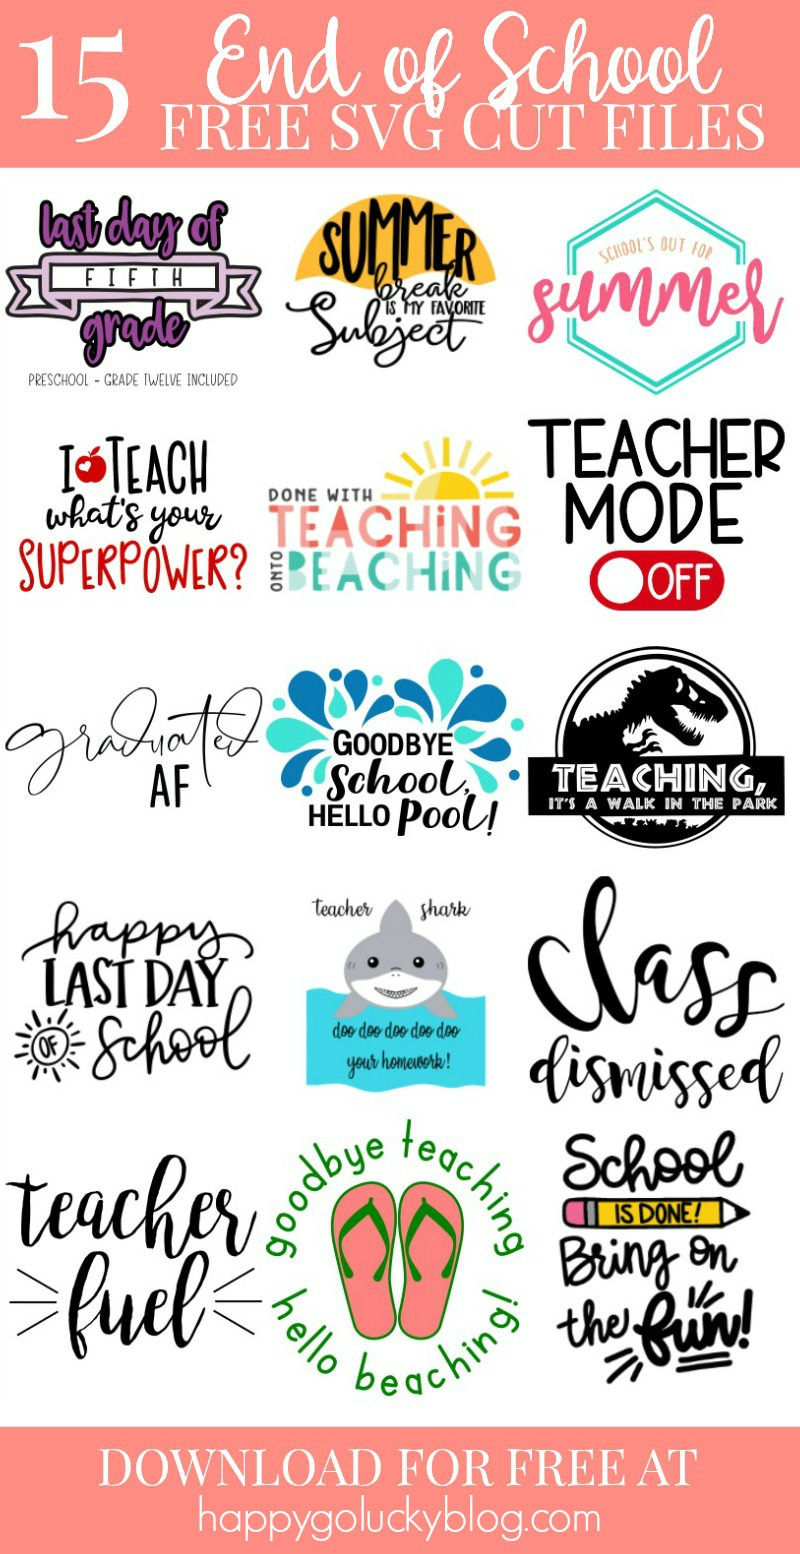 15 Teacher SVG Cut Files for the end of the school year.